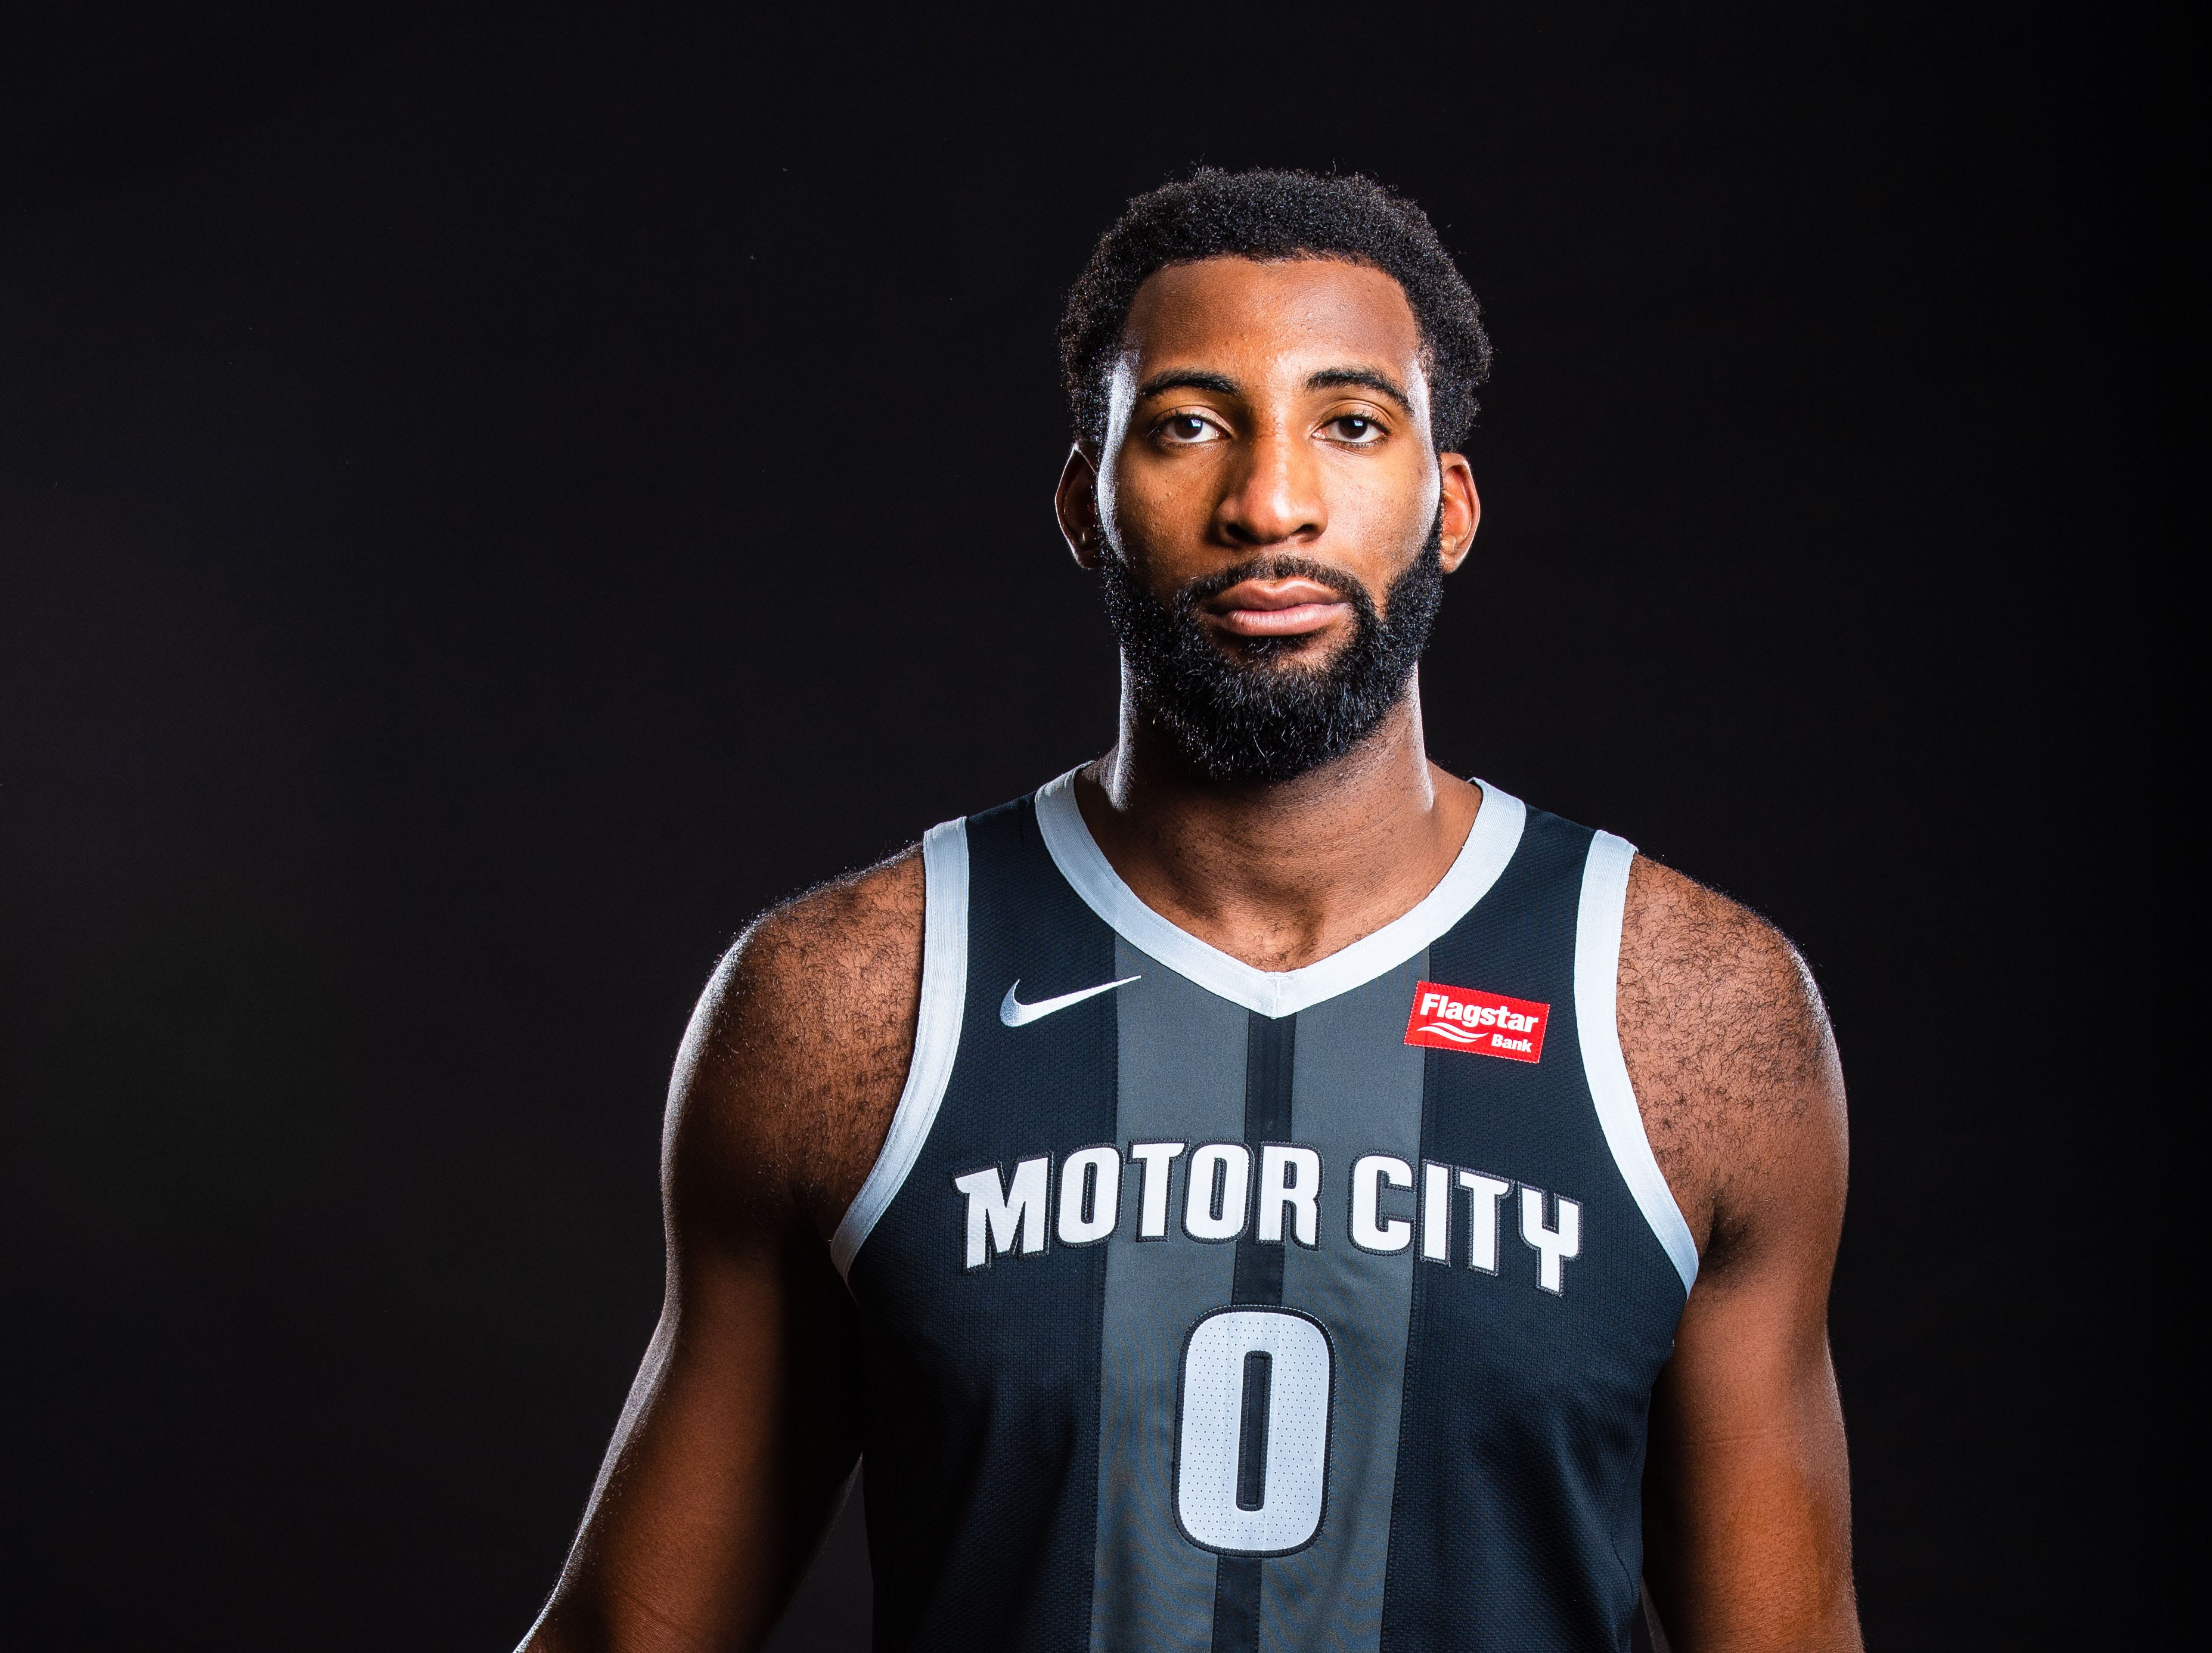 Detroit Pistons 'City' uniforms made official: 'Motor City' on front